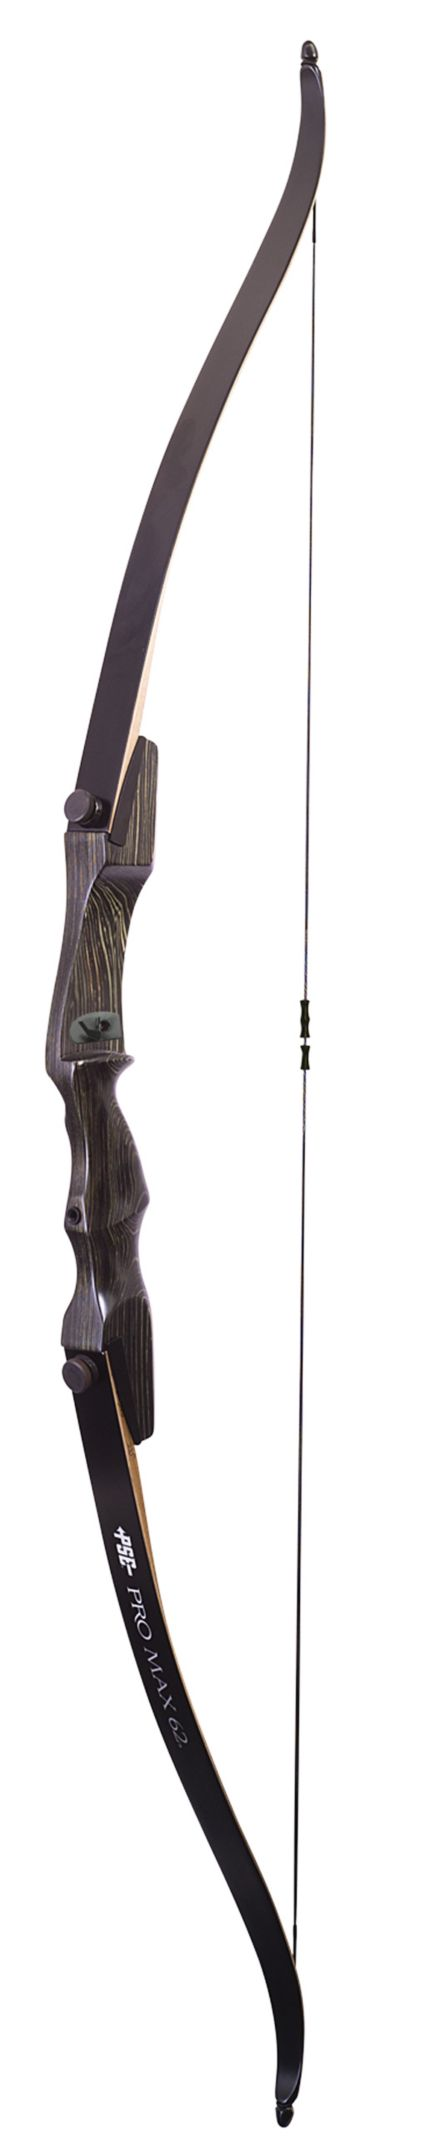 PSE Pro Max Recurve Bow Package